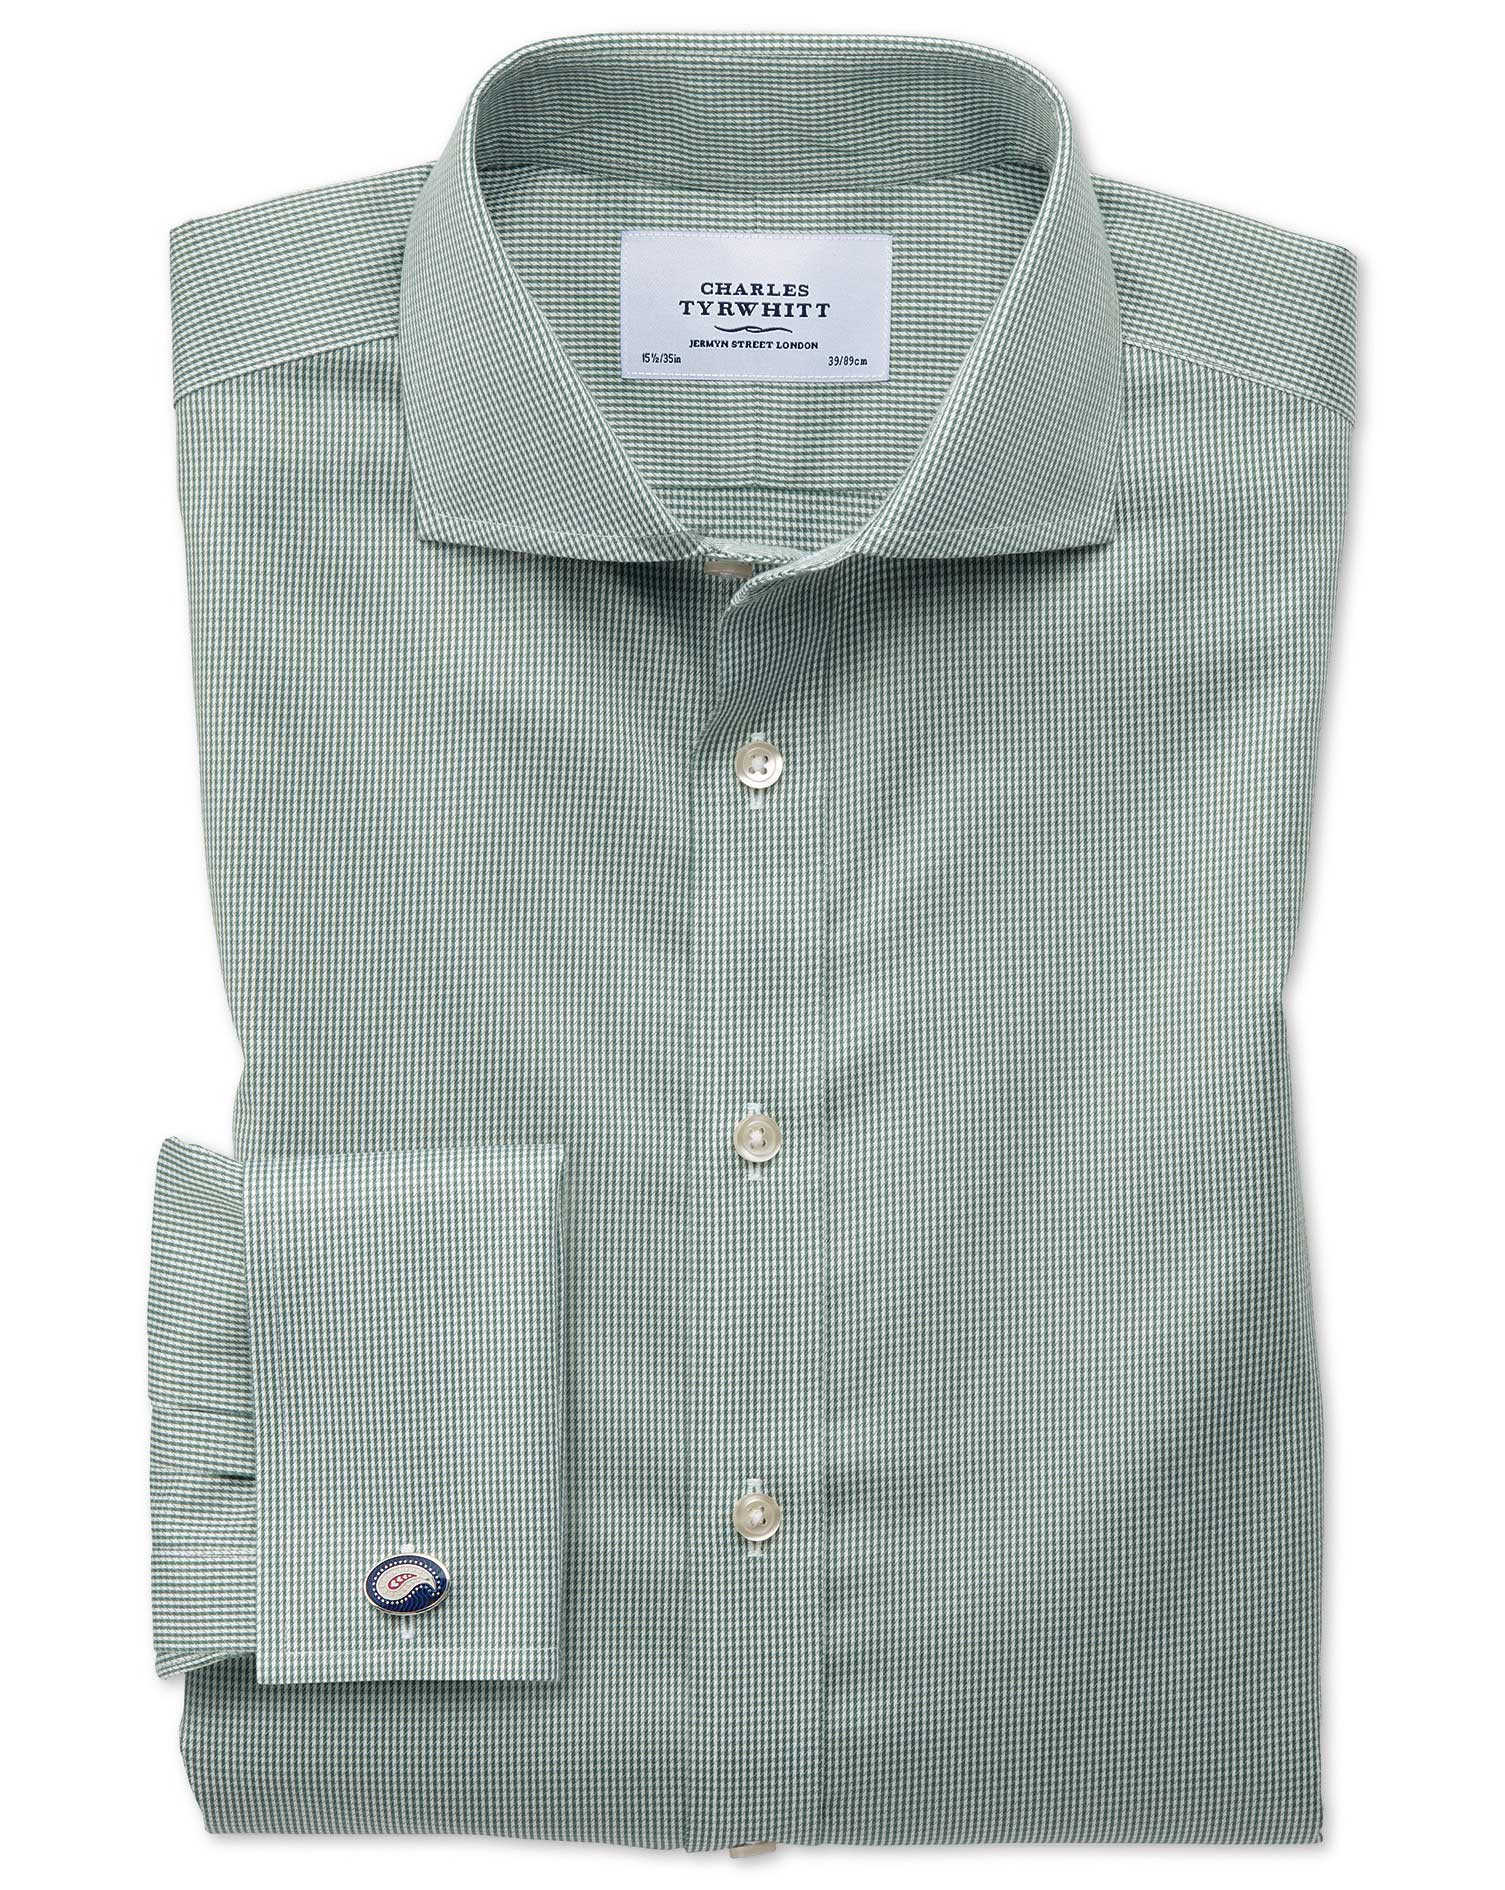 Extra Slim Fit Cutaway Non-Iron Puppytooth Olive Cotton Formal Shirt Double Cuff Size 16/35 by Charl